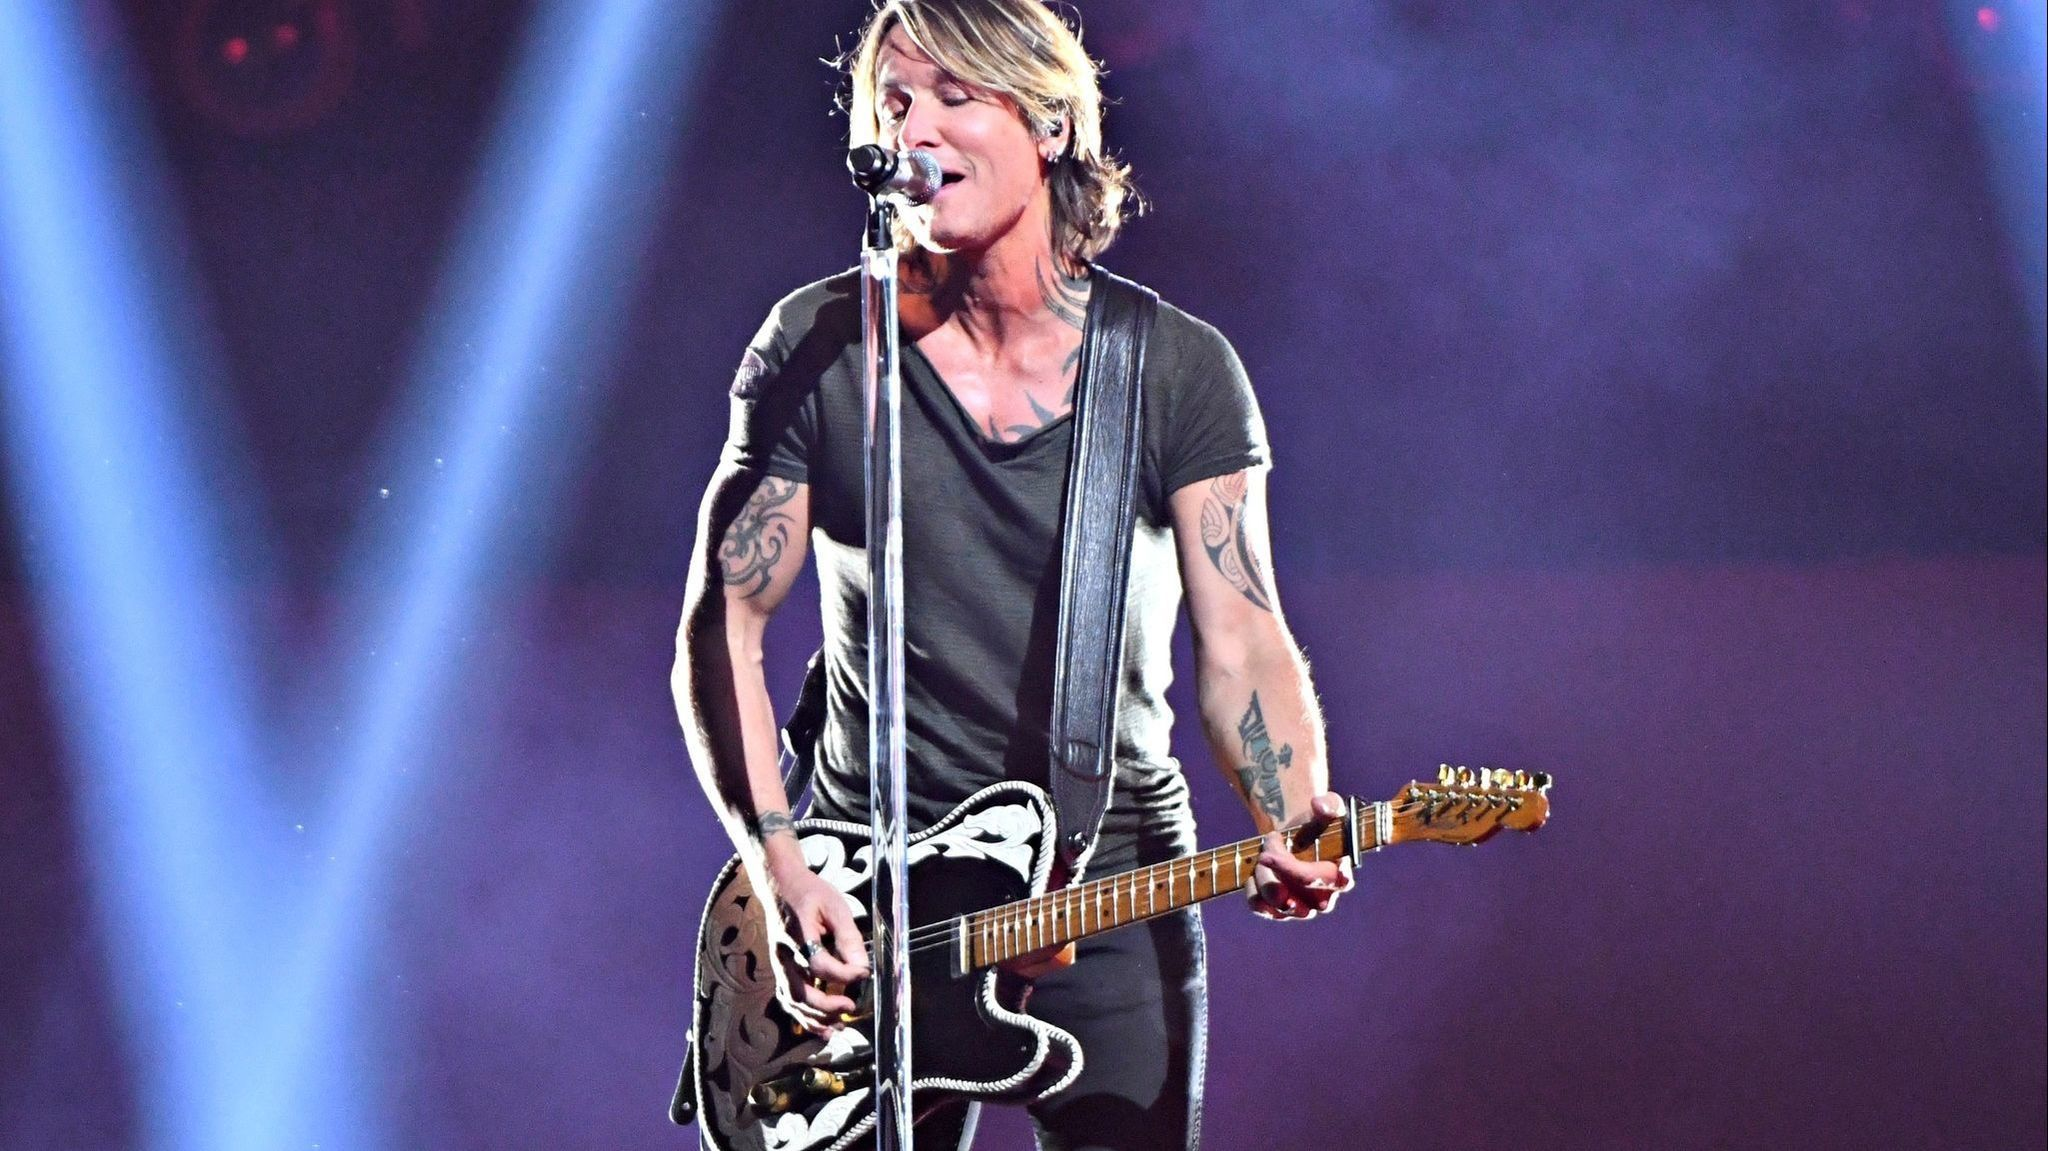 Sunfest 2019 lineup: Keith Urban, OneRepublic, Diplo, Tears for Fears